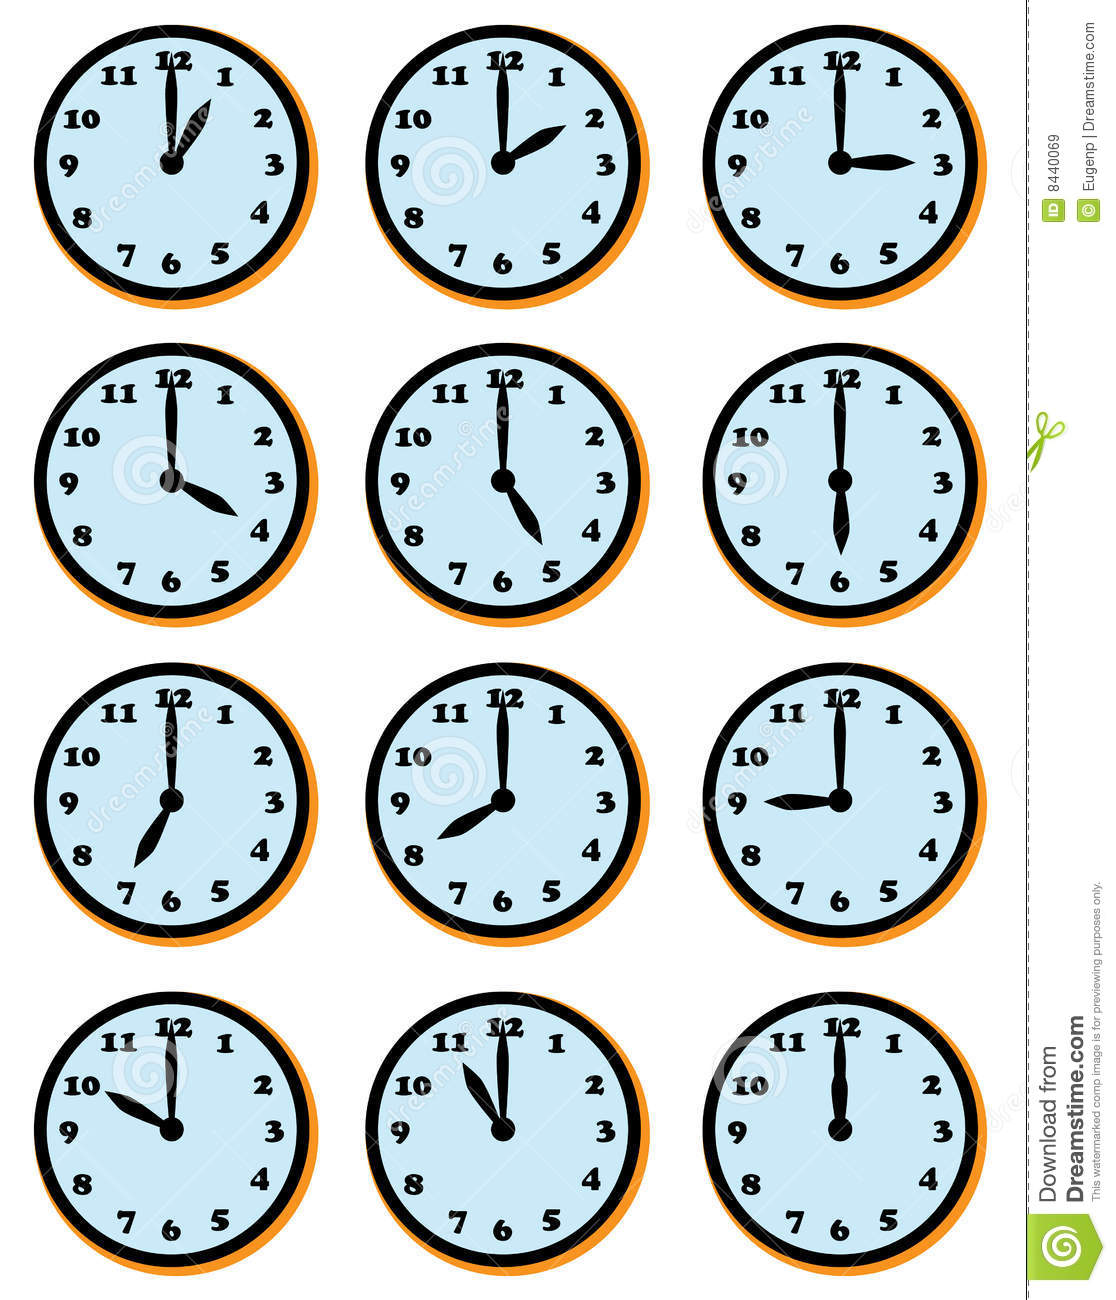 Clock Faces Royalty Free Stock Images - Image: 8440069